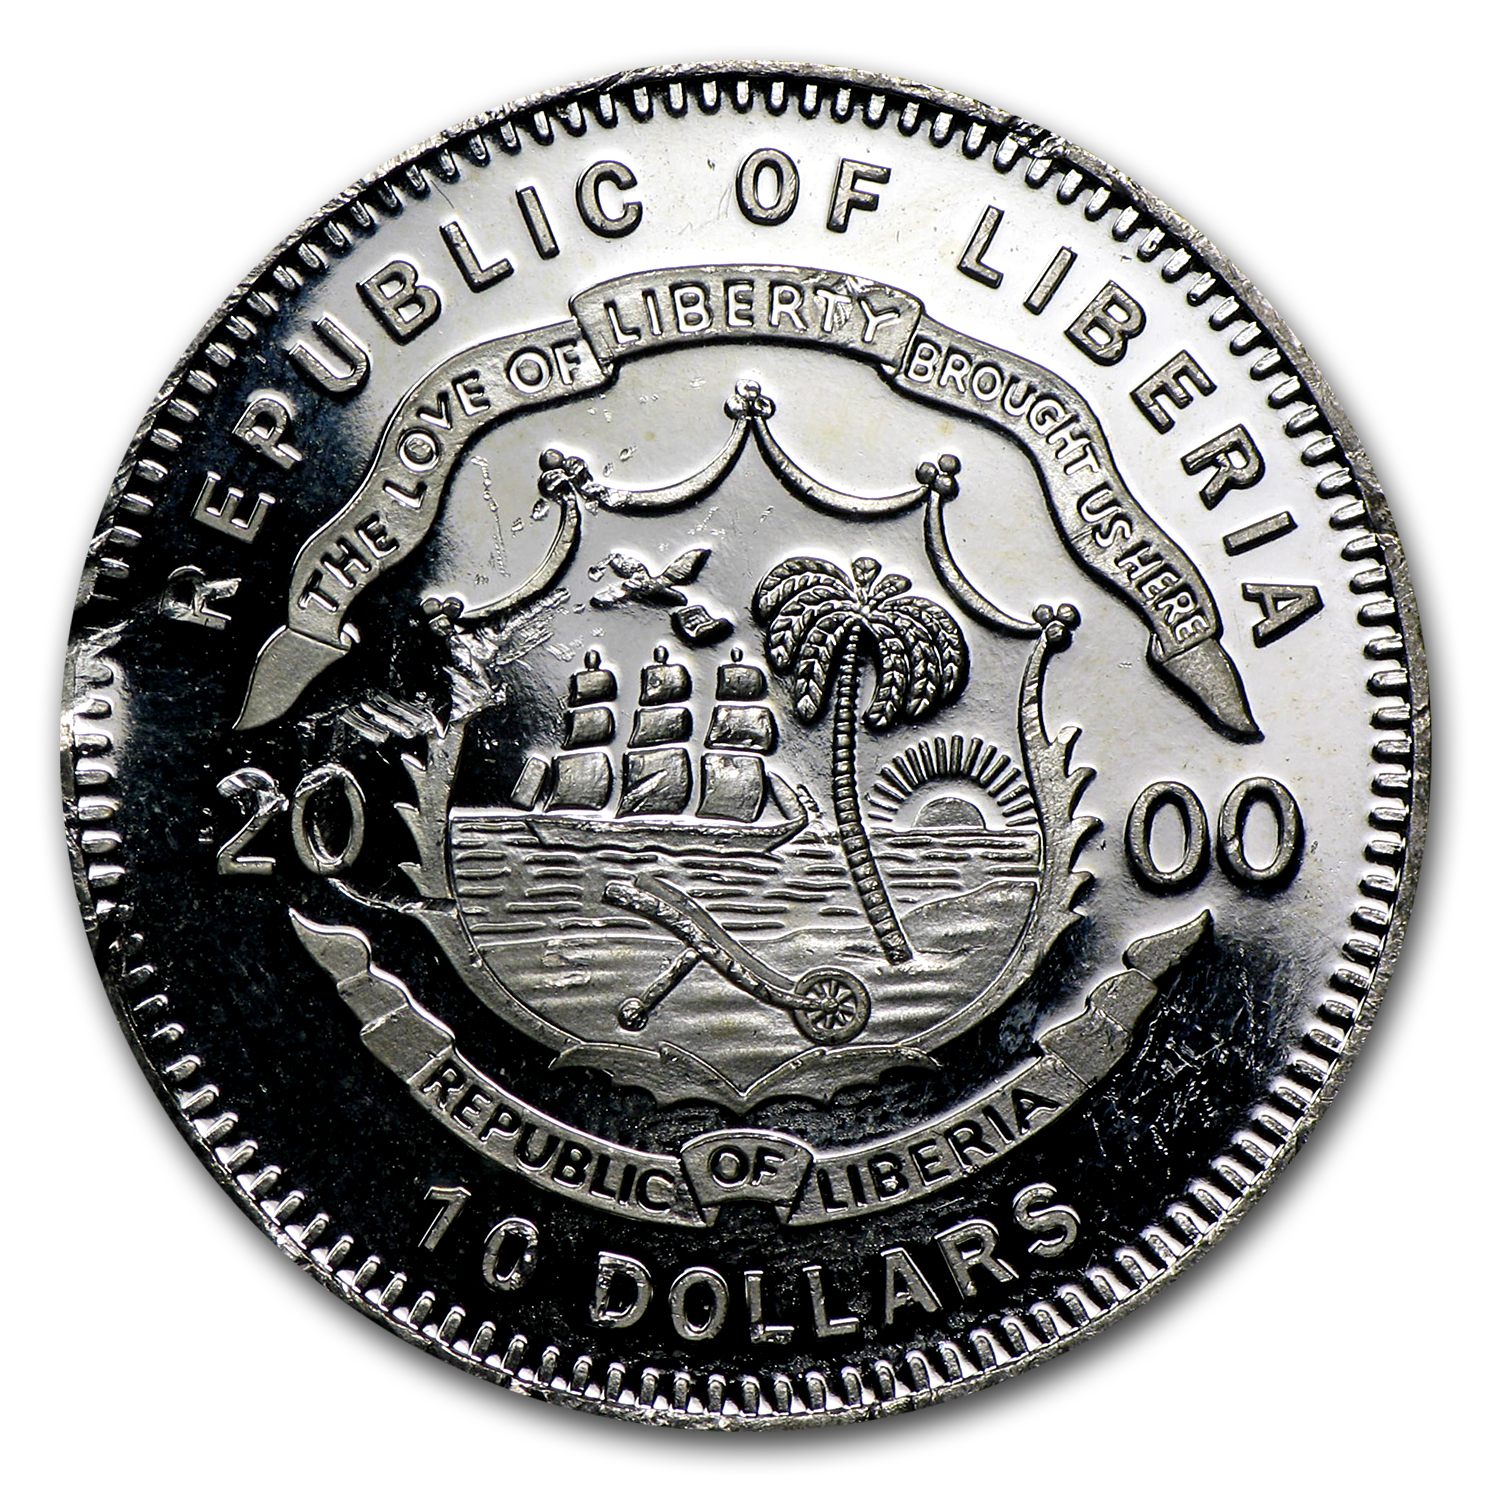 Liberia $10 Proof .999 Silver Coins ASW .2746